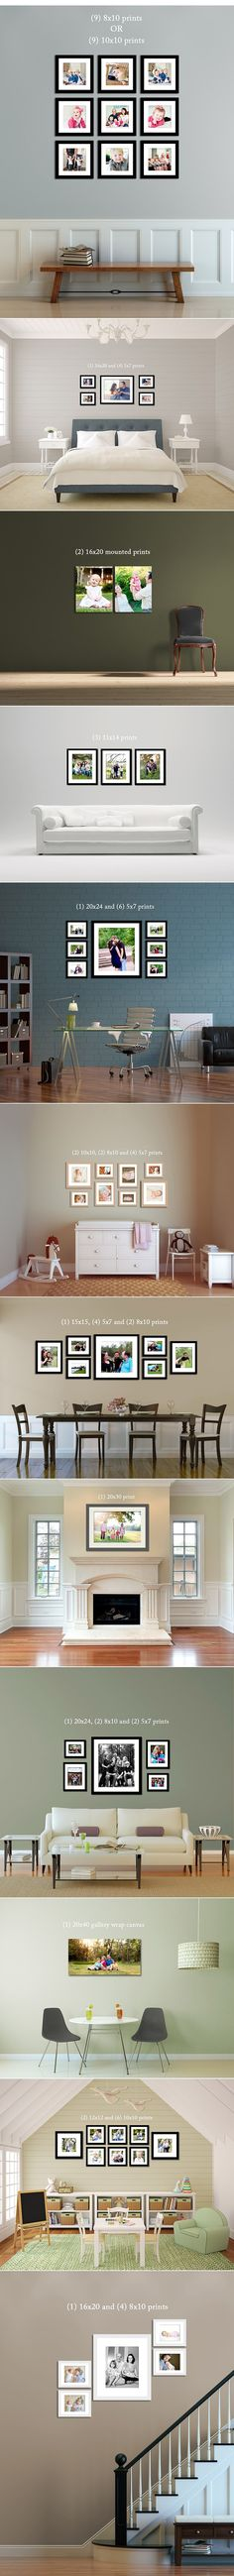 590dfaf7c56b15d3676bb6f85315f02b How to Hang Photos